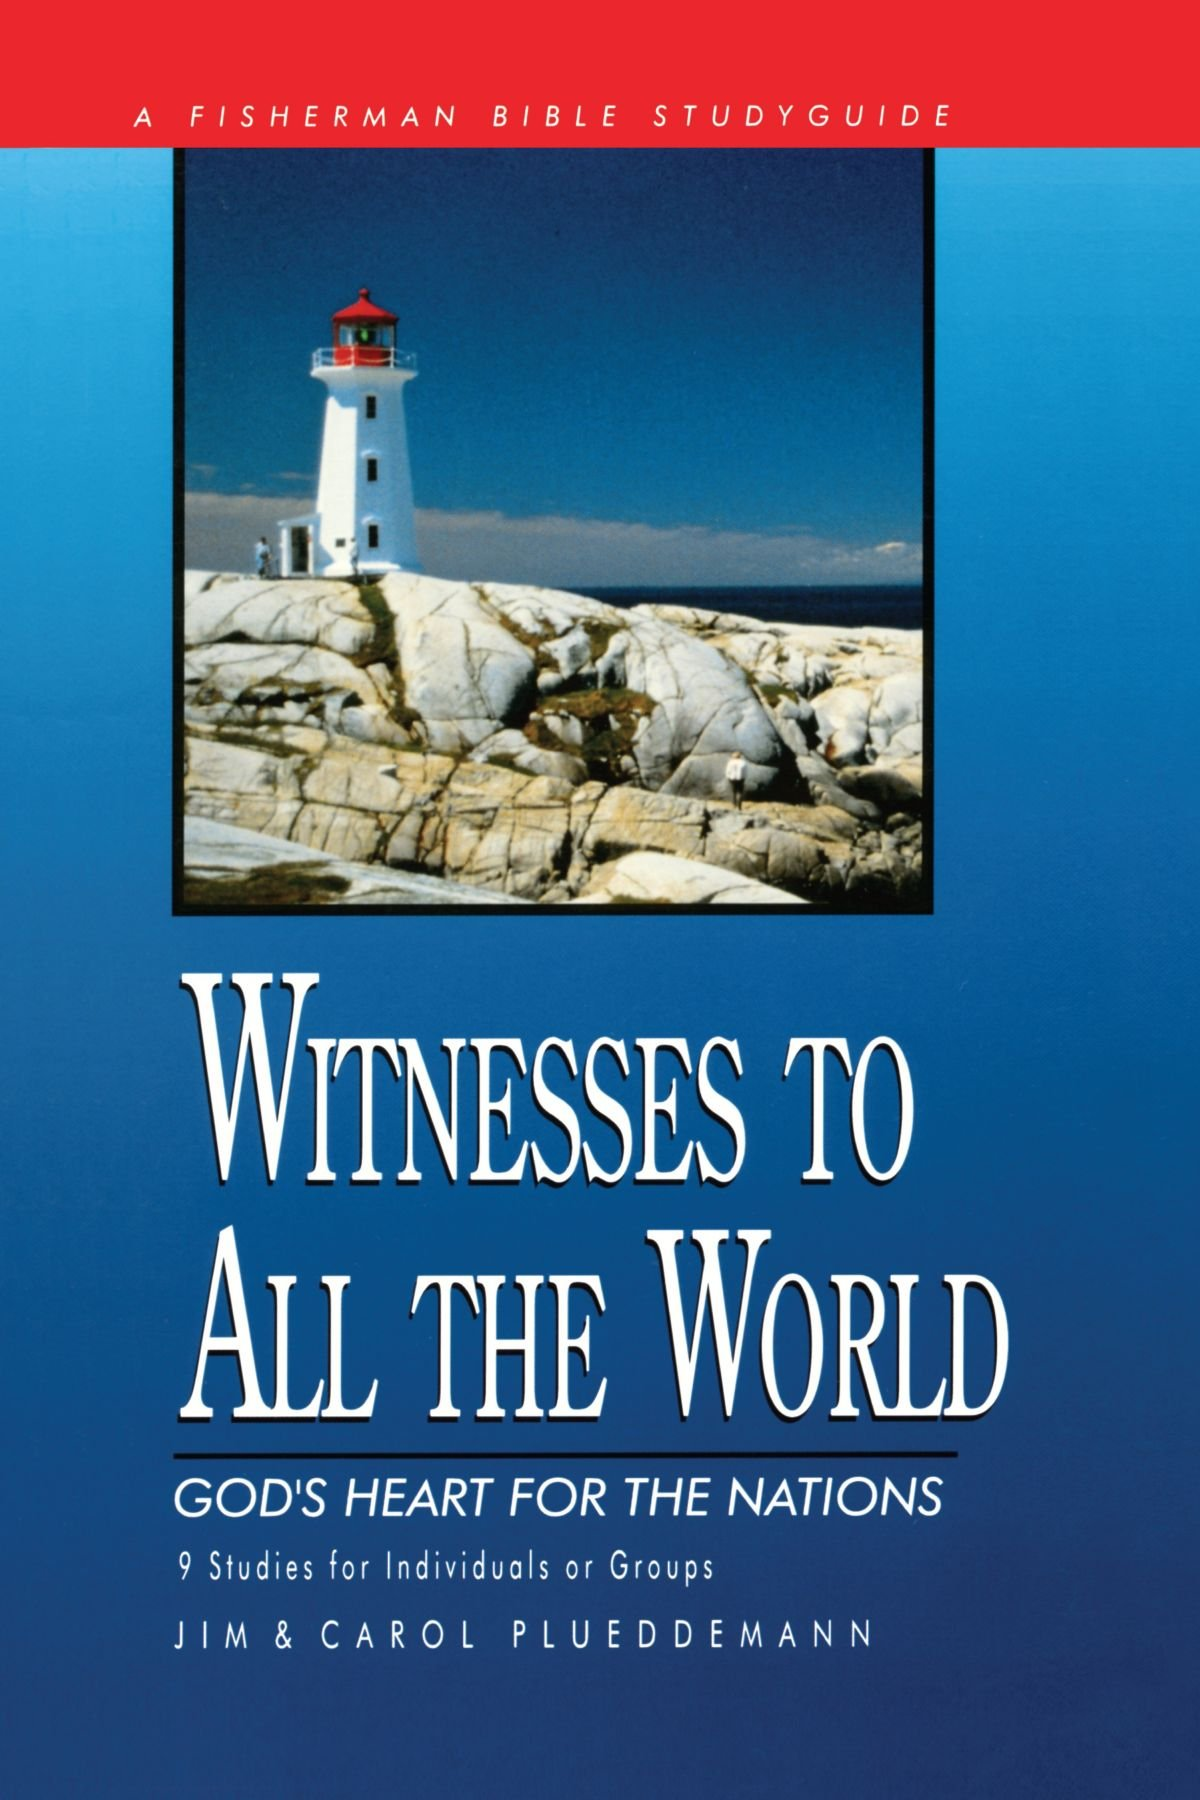 Witnesses to All the World: God's Heart for the Nations (Fisherman Bible Studyguide Series) pdf epub